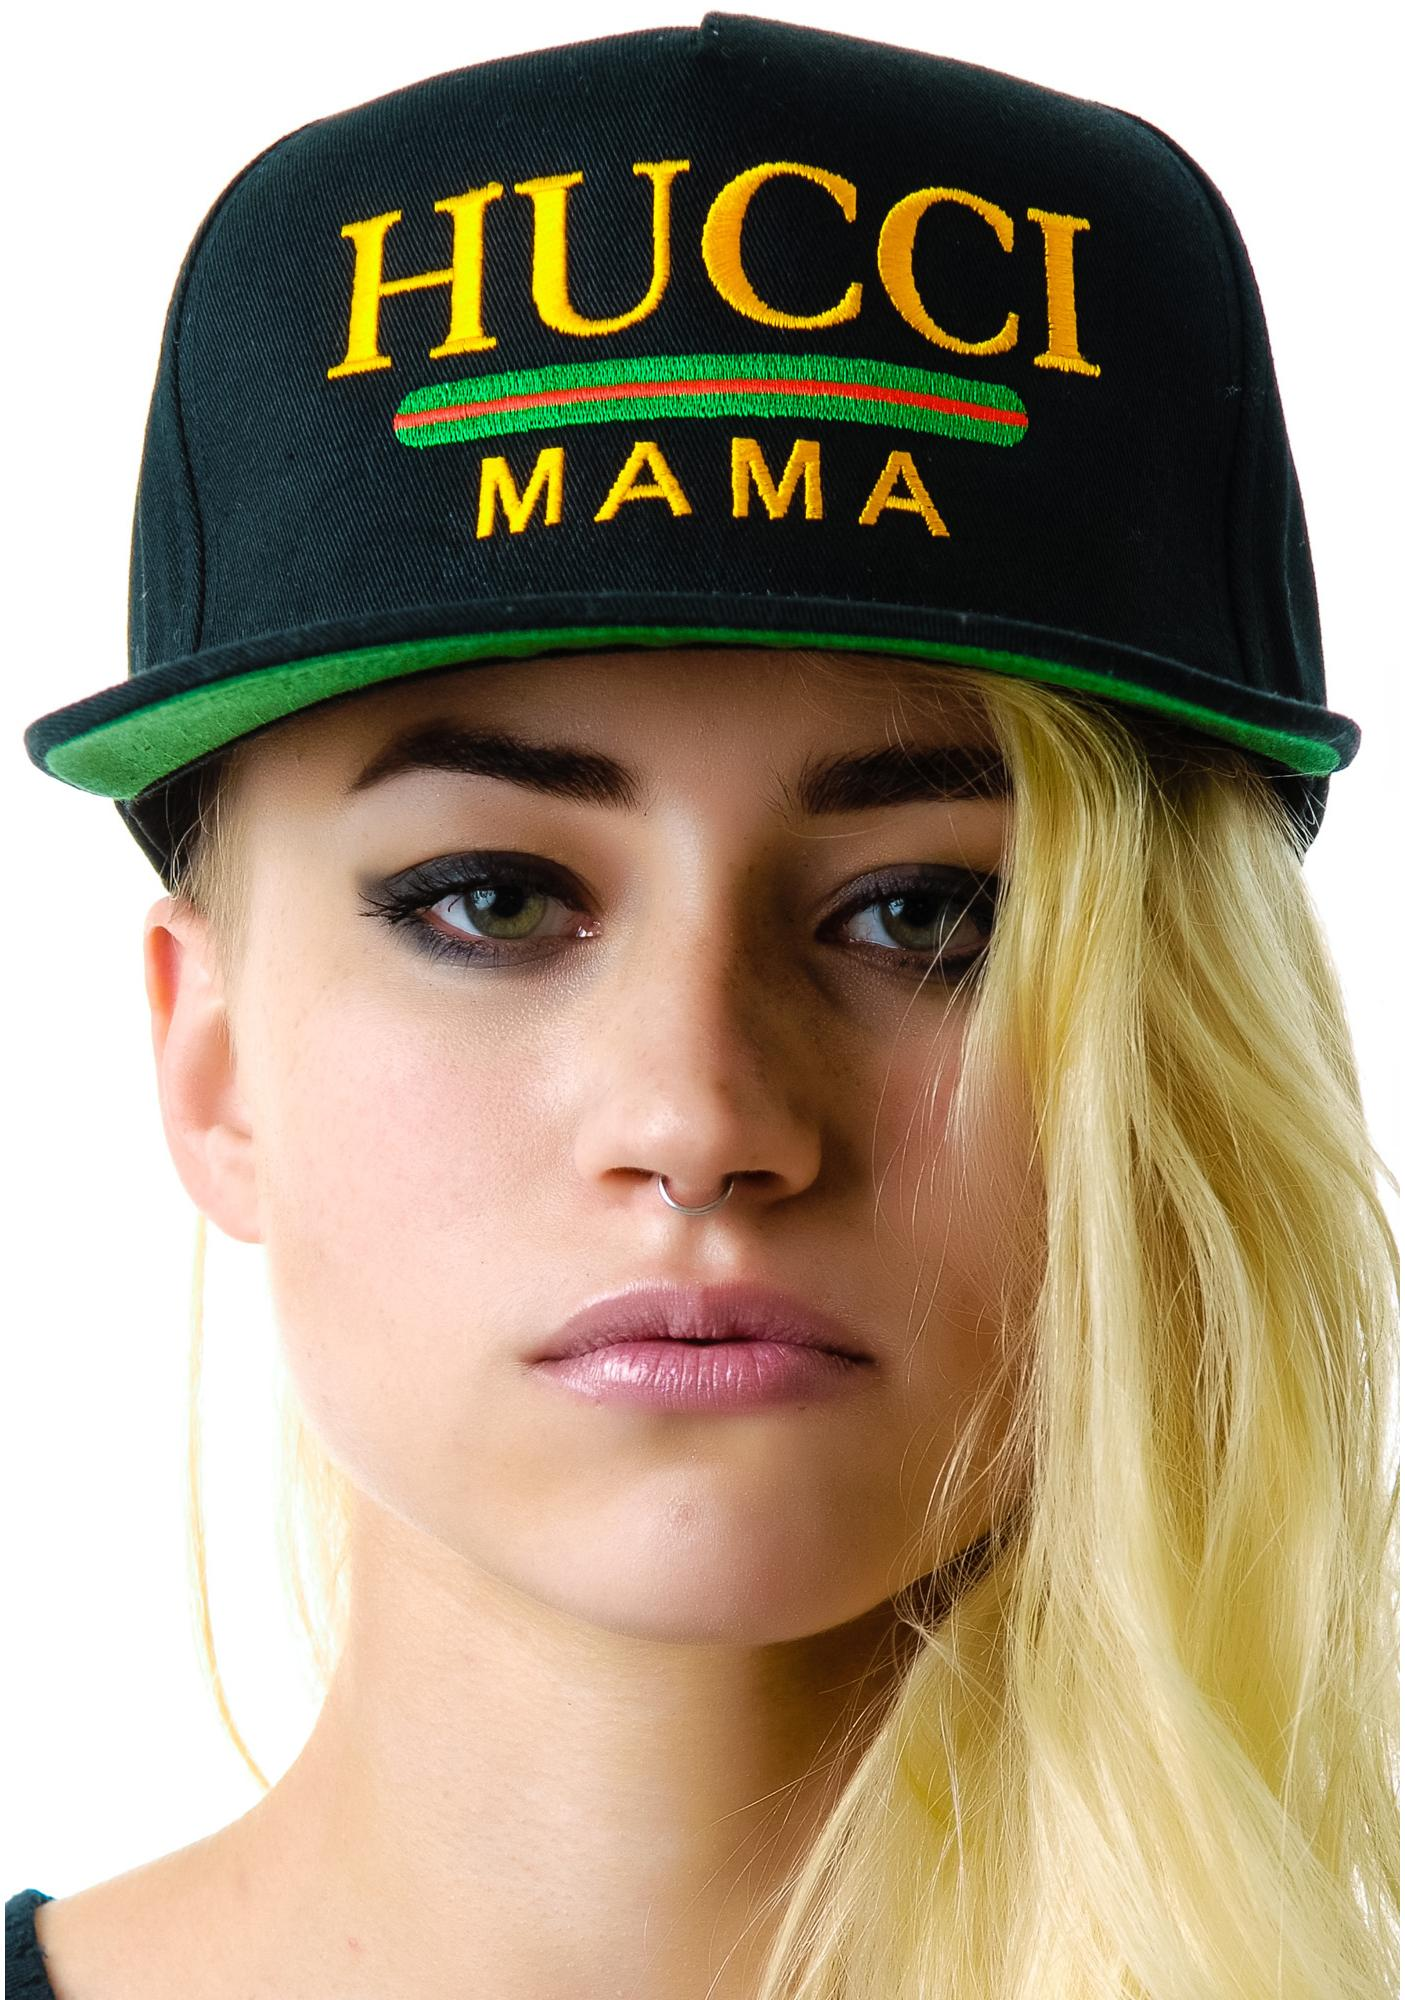 Petals and Peacocks Hucci Mama Snapback